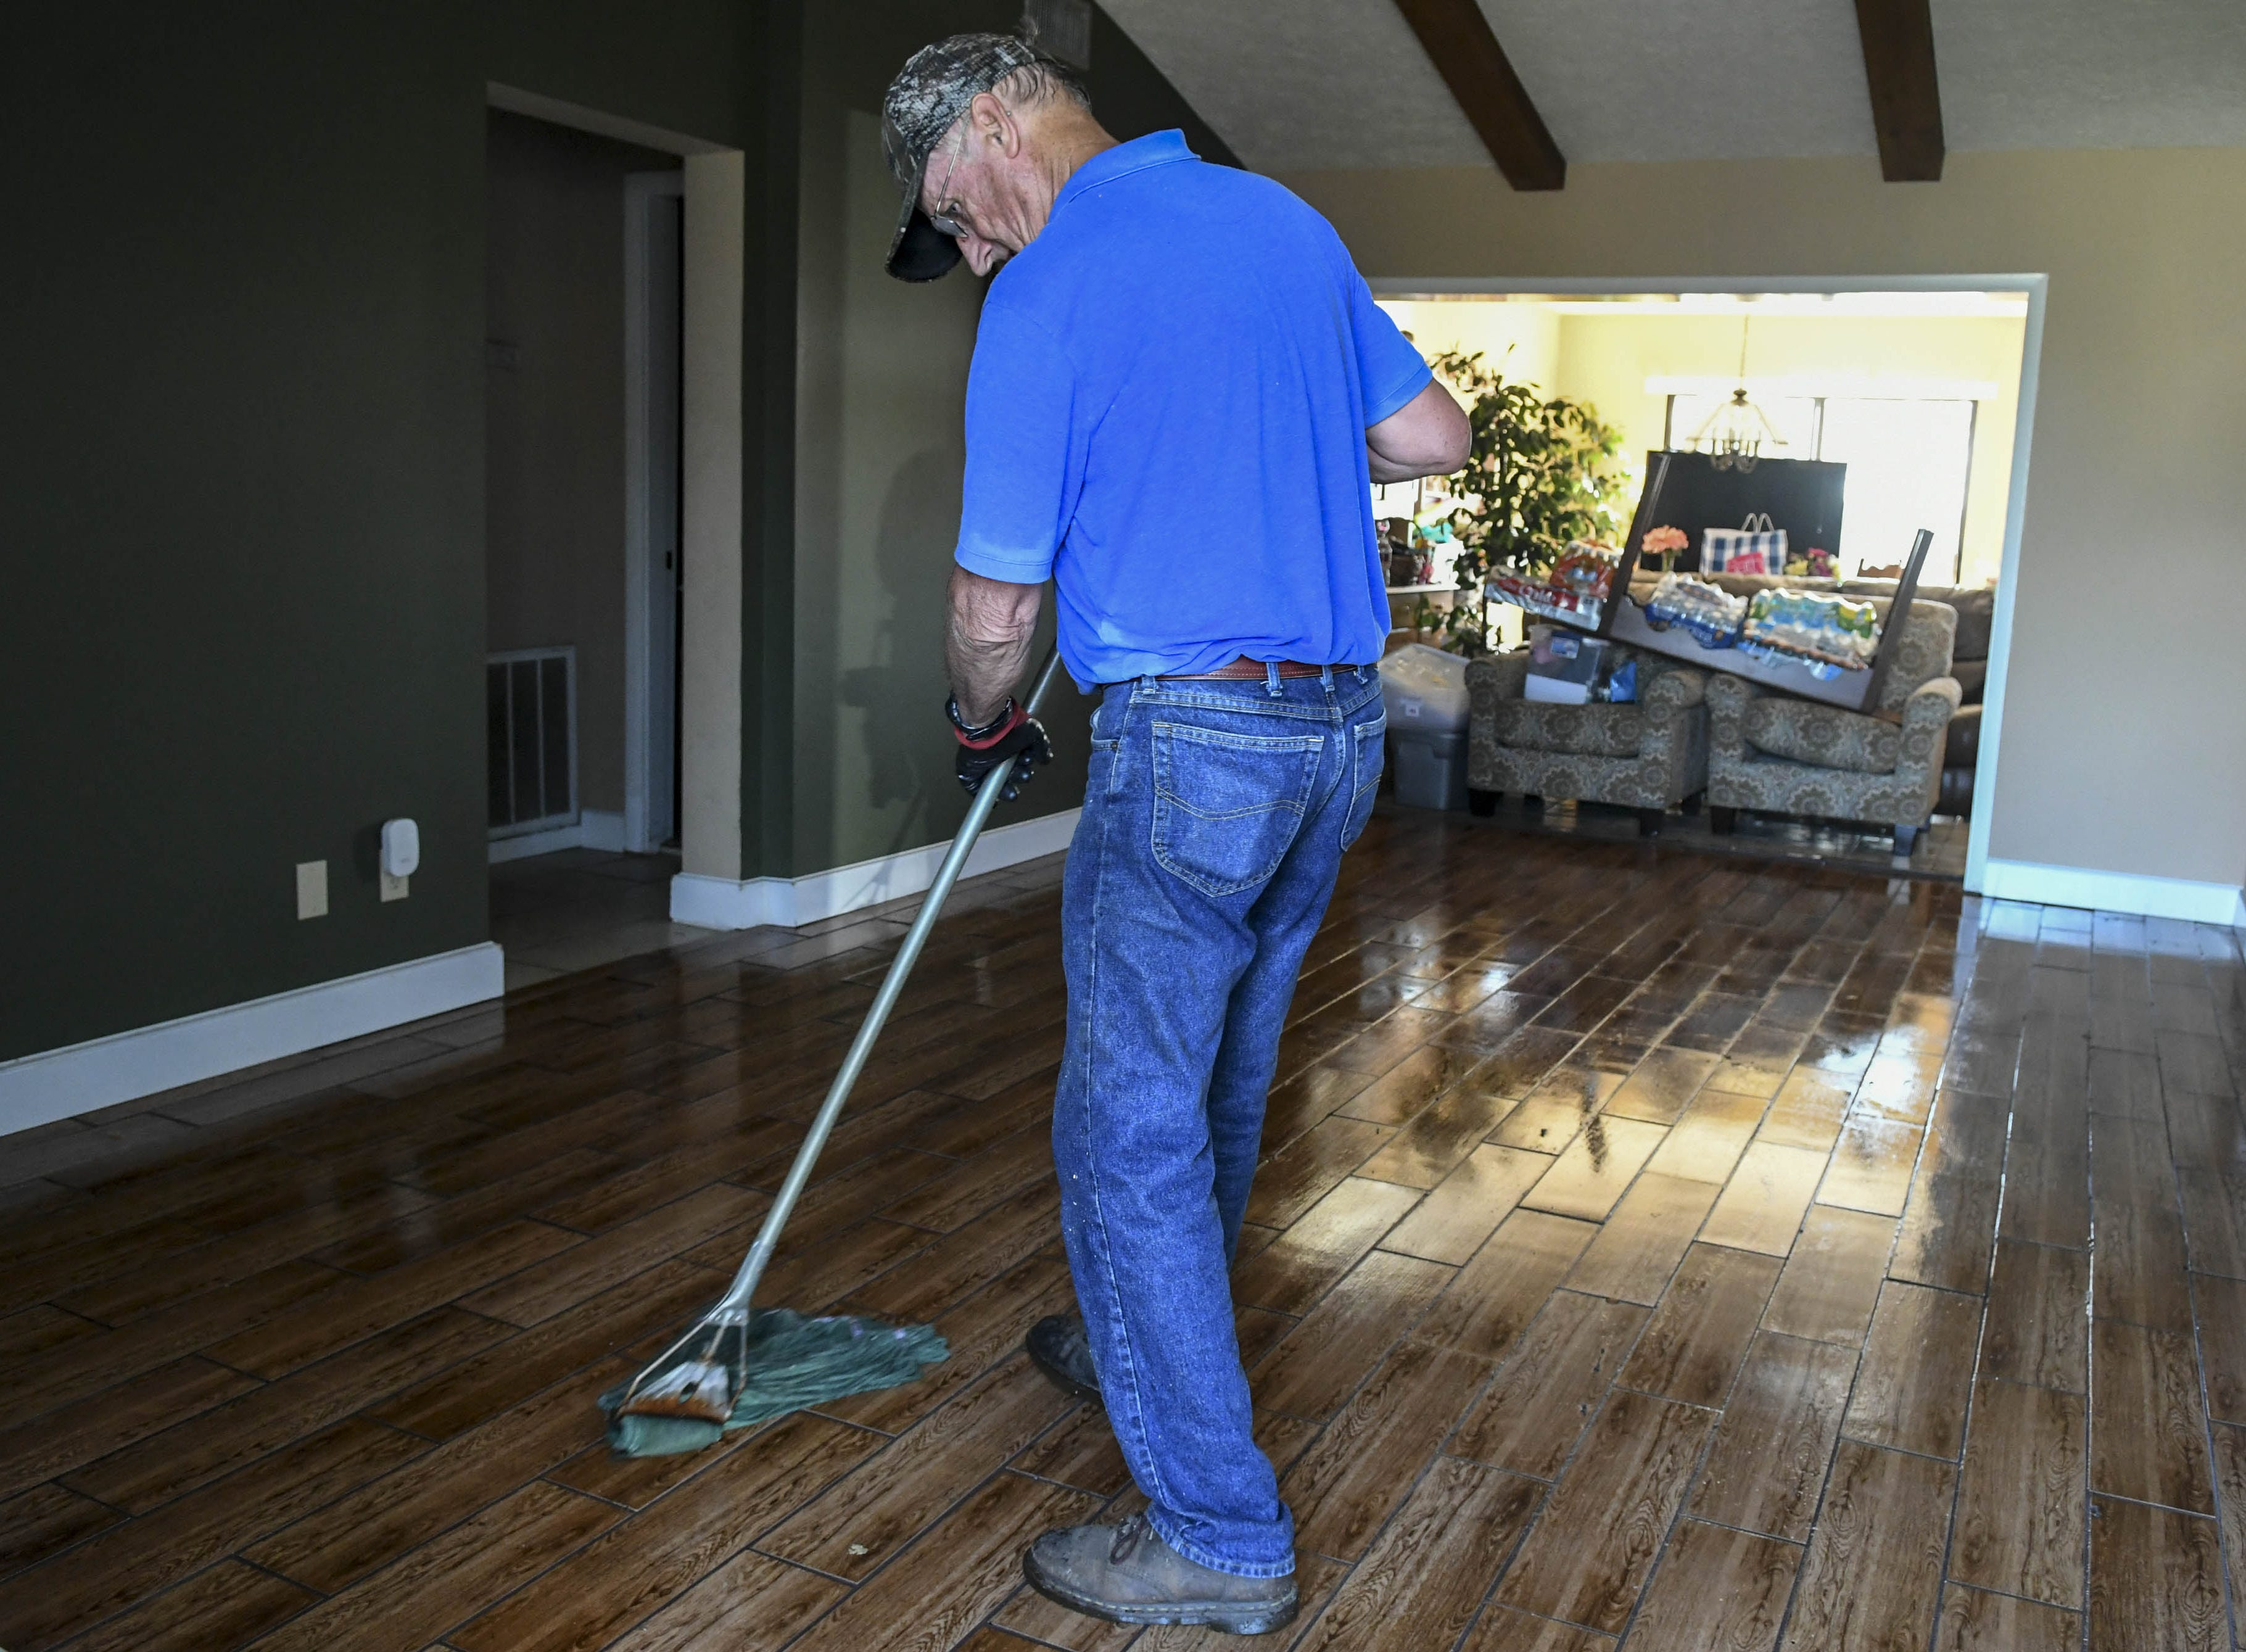 Jim Hankins, pastor of Calvary Baptist Church in Panama City mops up water in his living room Thursday.  Hurricane Michael tore off part of their roof, flooring the home. Hankins was once pastor at Parkway Baptist Church in Merritt Island.